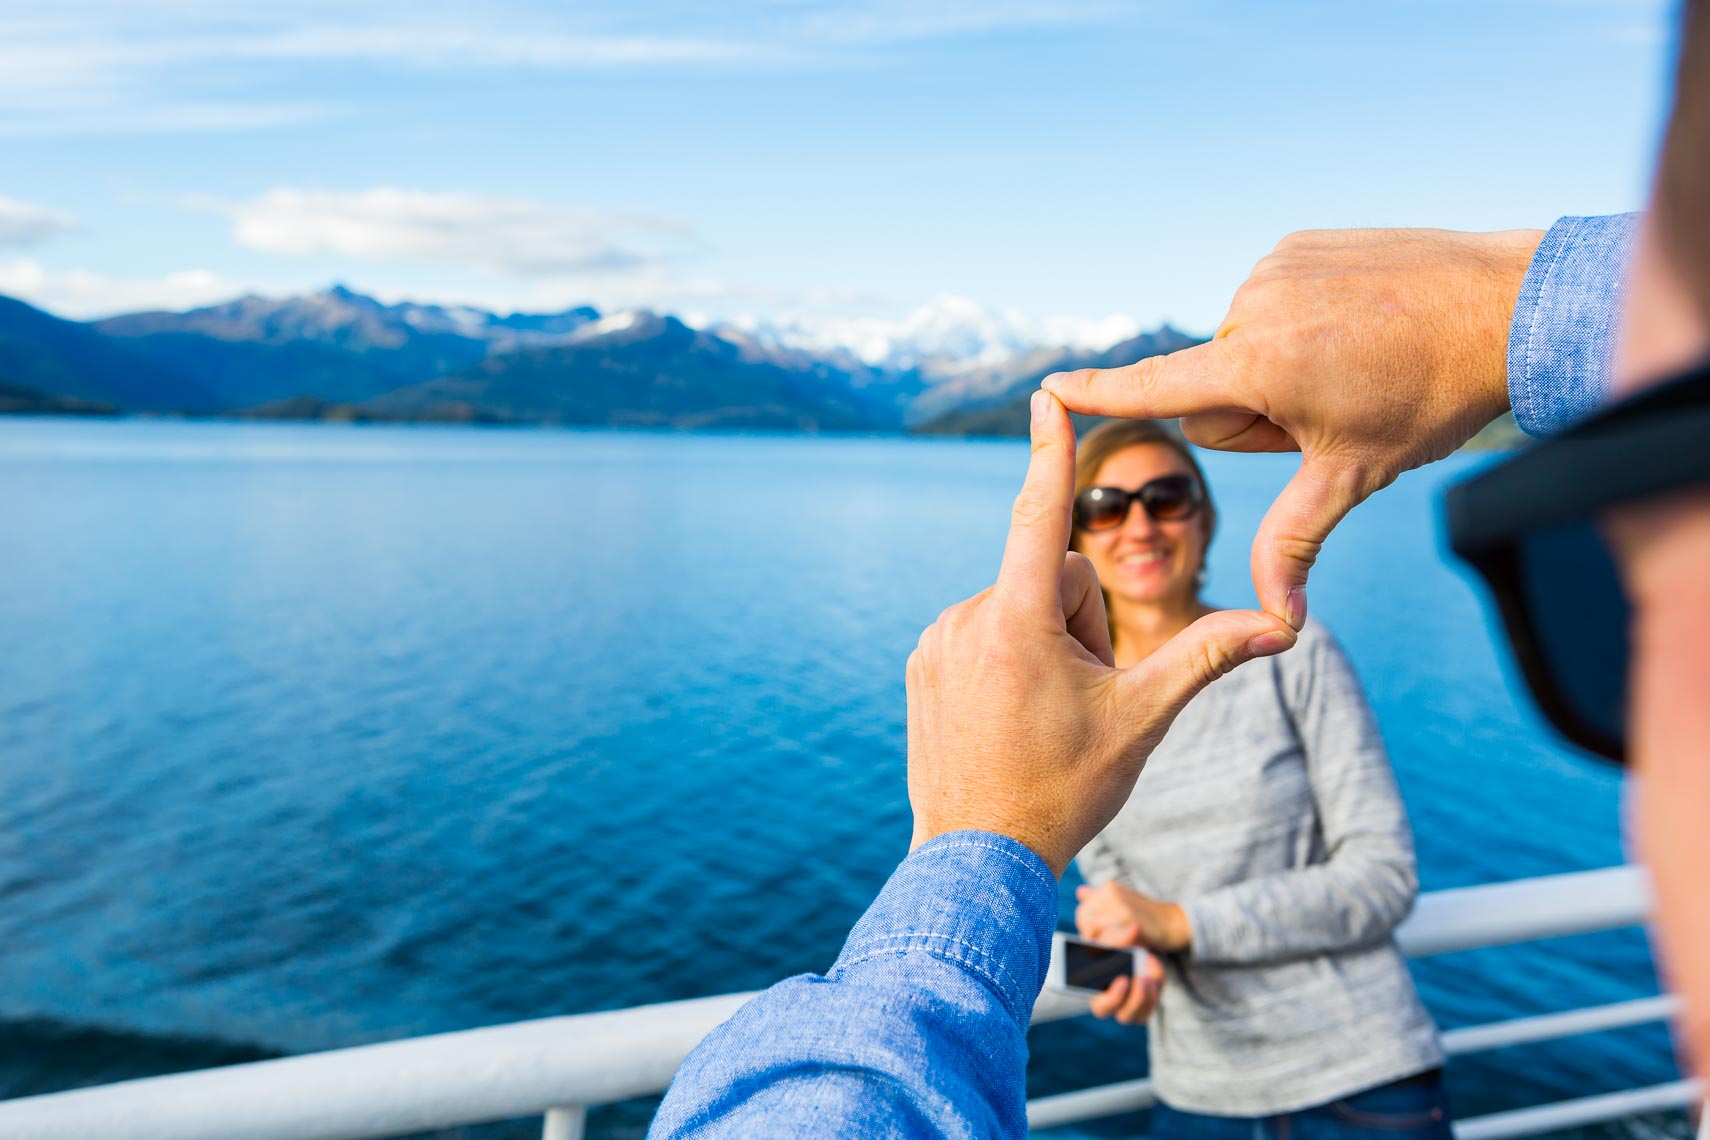 Alaska Tourism Couple Travel By Ferry | Michael DeYoung